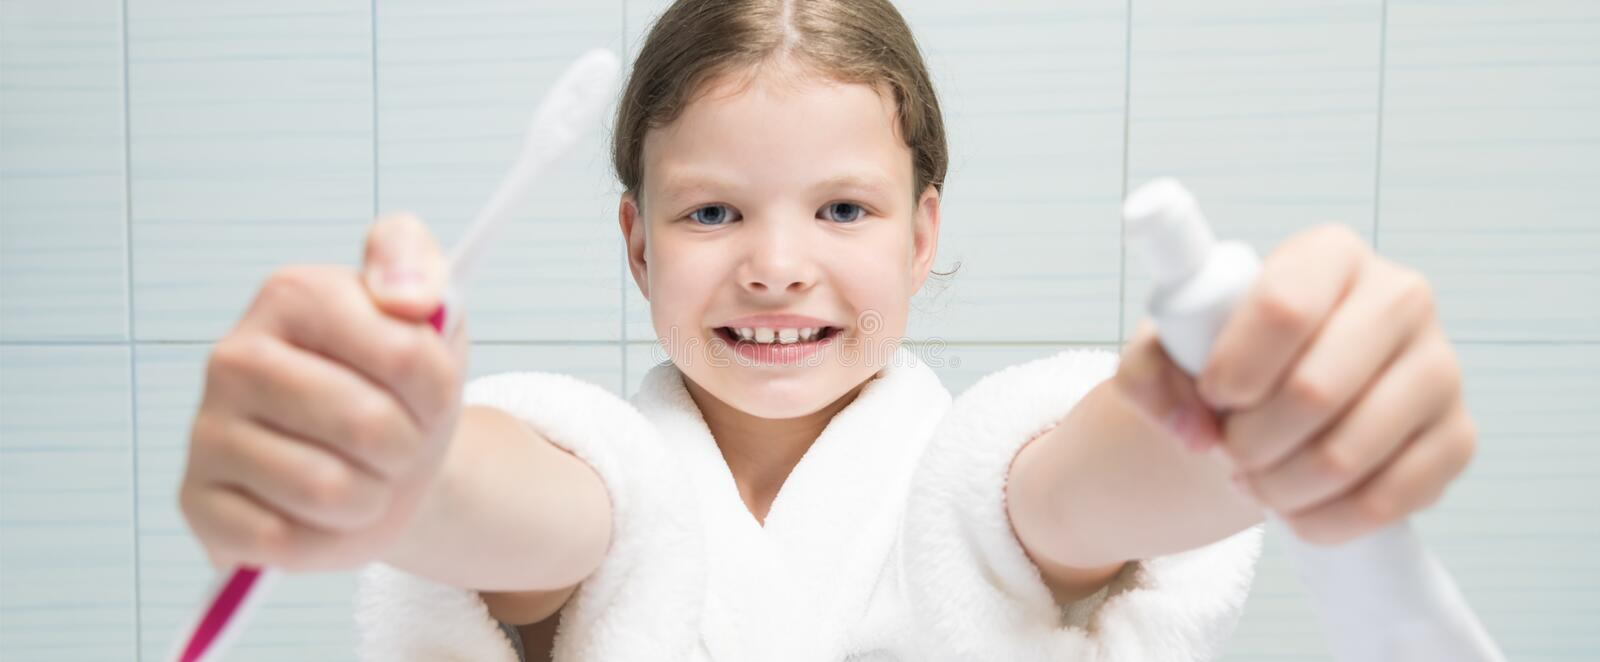 A girl in a white coat holding a toothbrush and toothpaste in her hands, stretching them forward. A girl in a white coat holding a toothbrush and toothpaste in royalty free stock photos